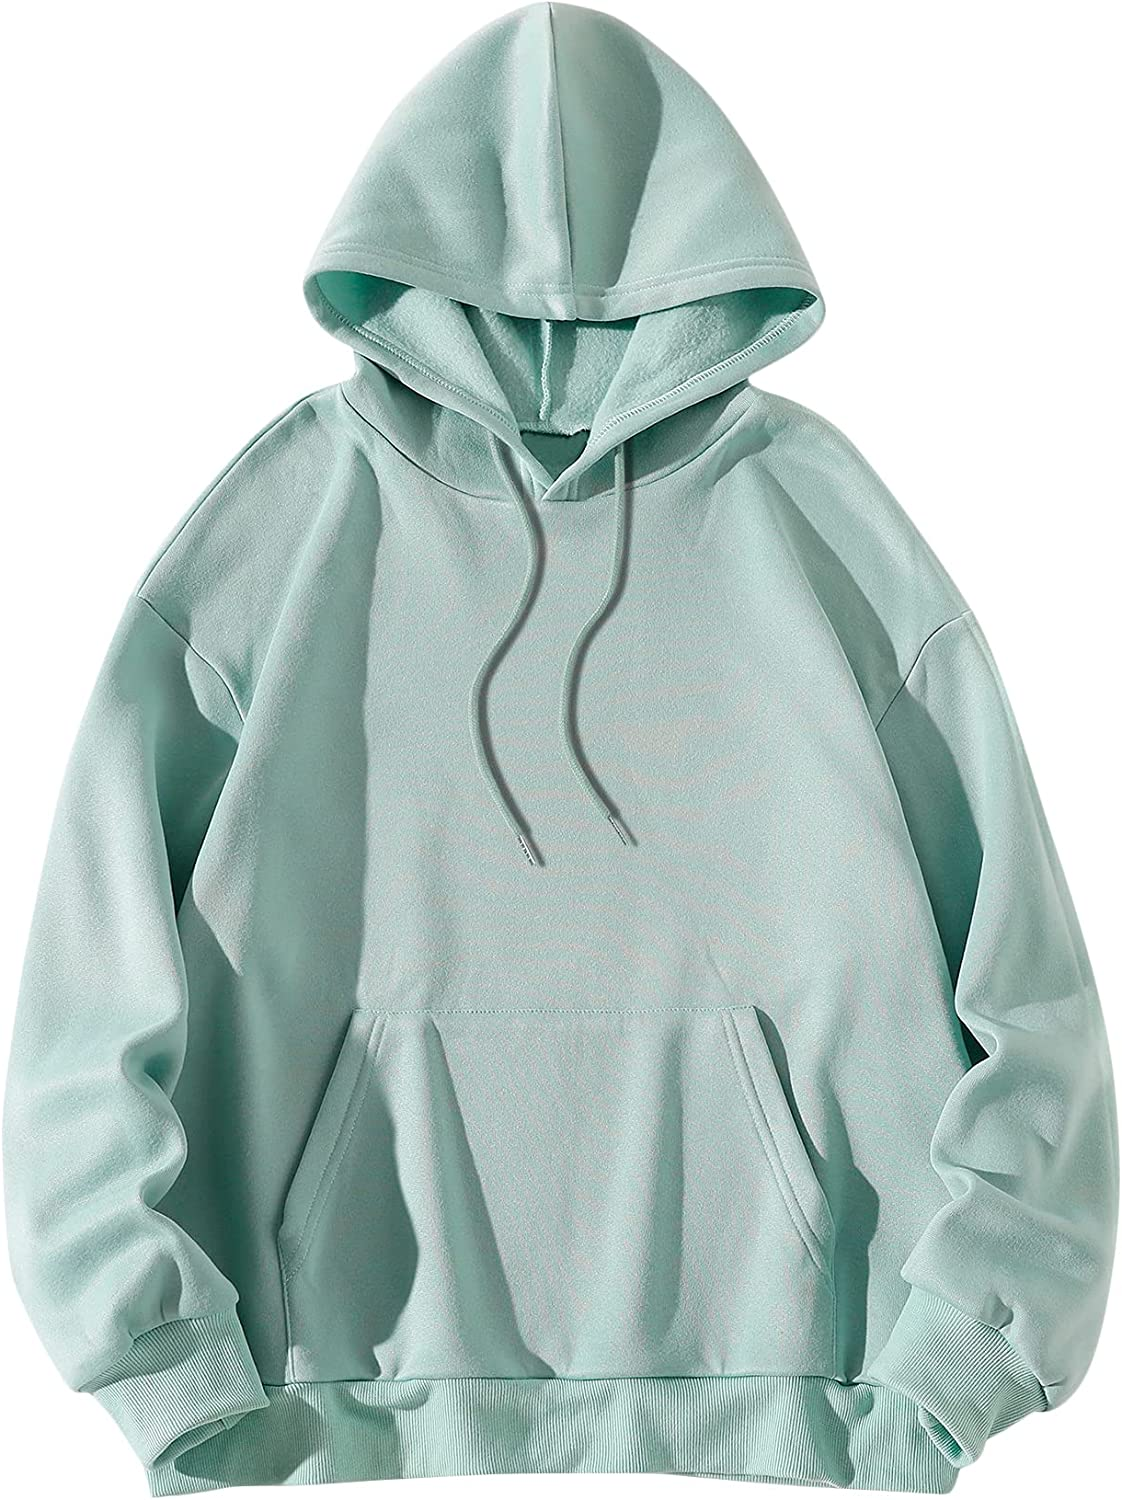 MakeMeChic Women's Solid Long Sleeve Sweatshirt Hoodie Tops with Pocket Casual Drawstring Pullover